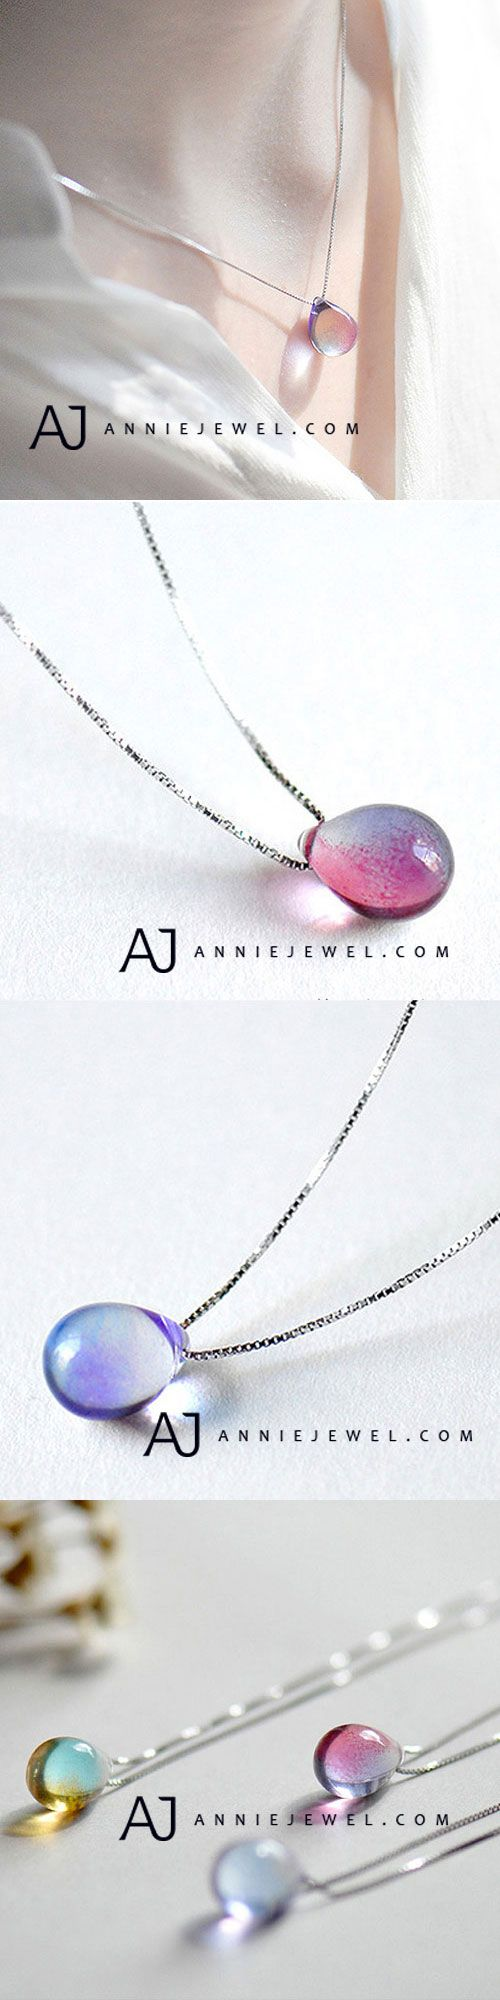 STERLING SILVER NECKLACE CRYSTAL OVAL WATER DROP CHARM PENDANT NECKLACE GIFT JEWELRY ACCESSORIES GIRLS WOMEN